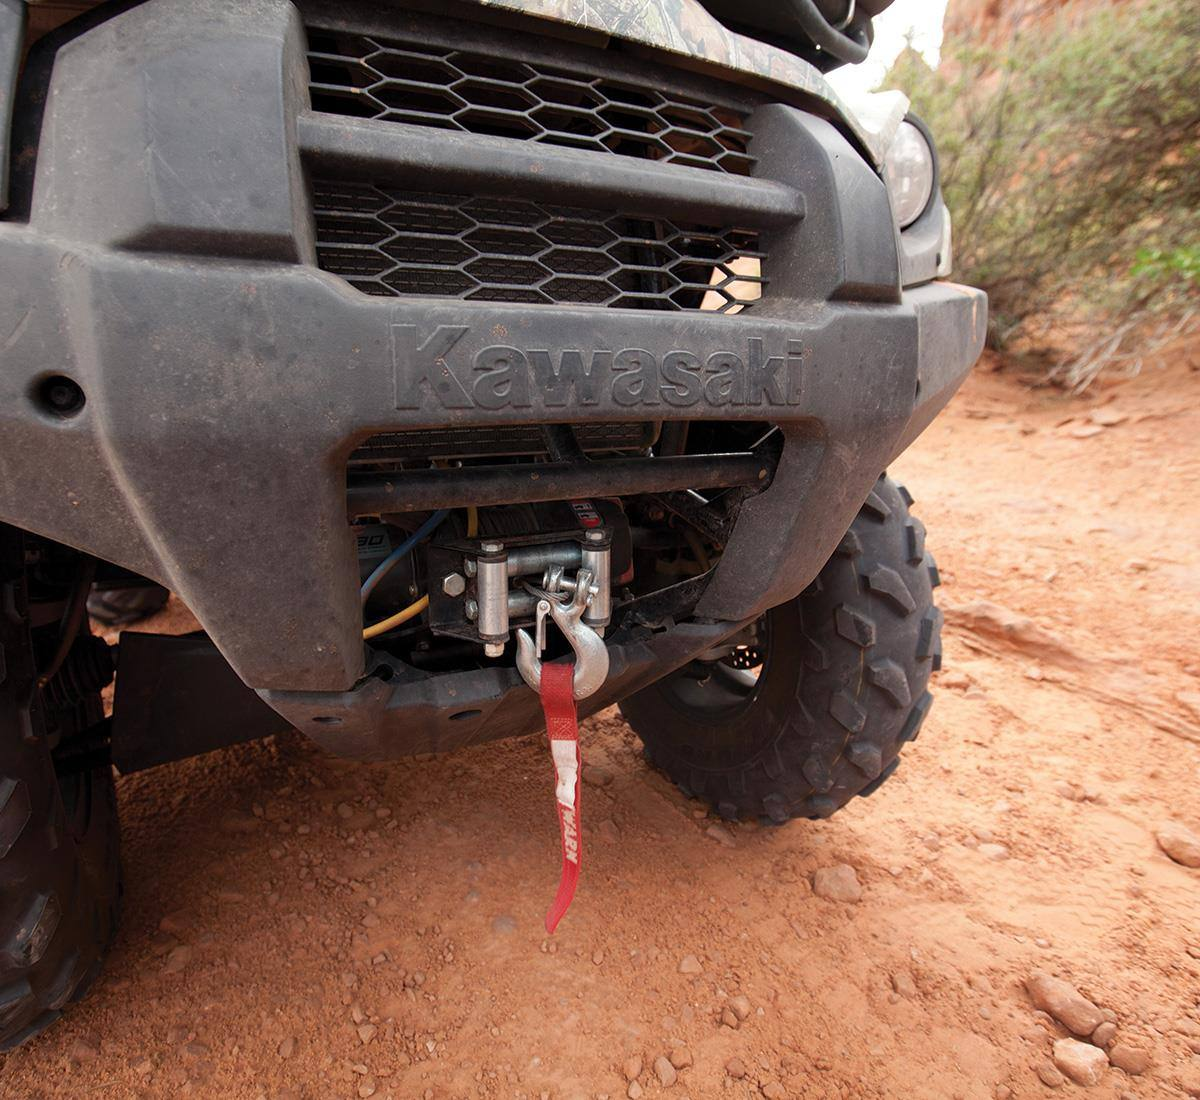 hight resolution of warn winch mount for sale in newport news va cycle city corp 757 595 9721